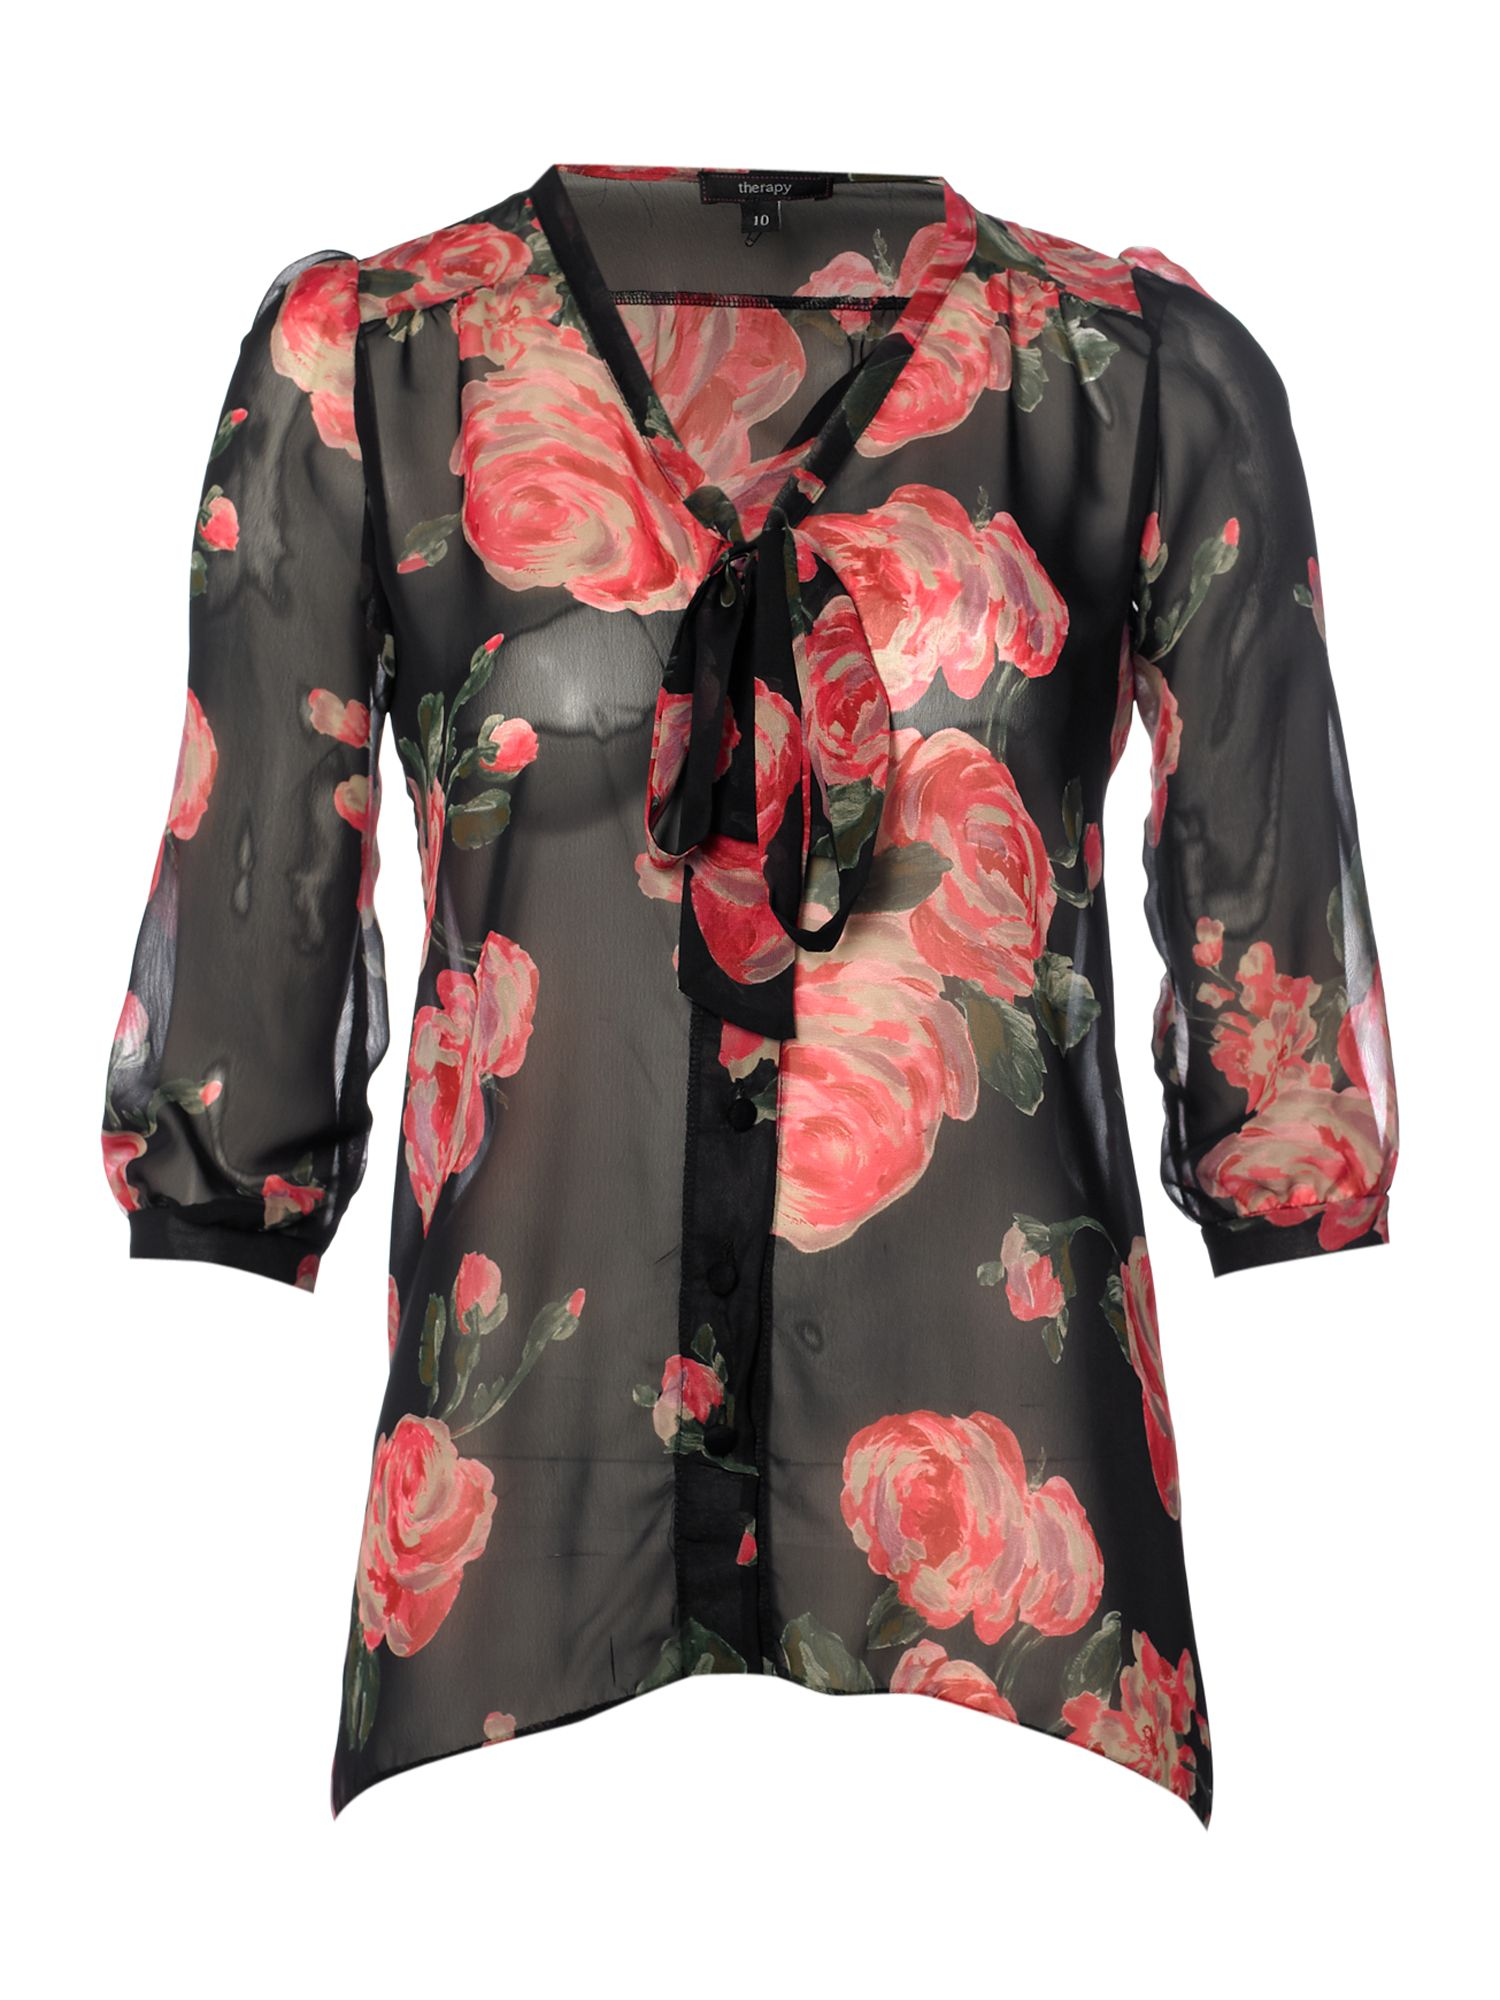 Therapy Womens Therapy Rose pussybow blouse, Black product image